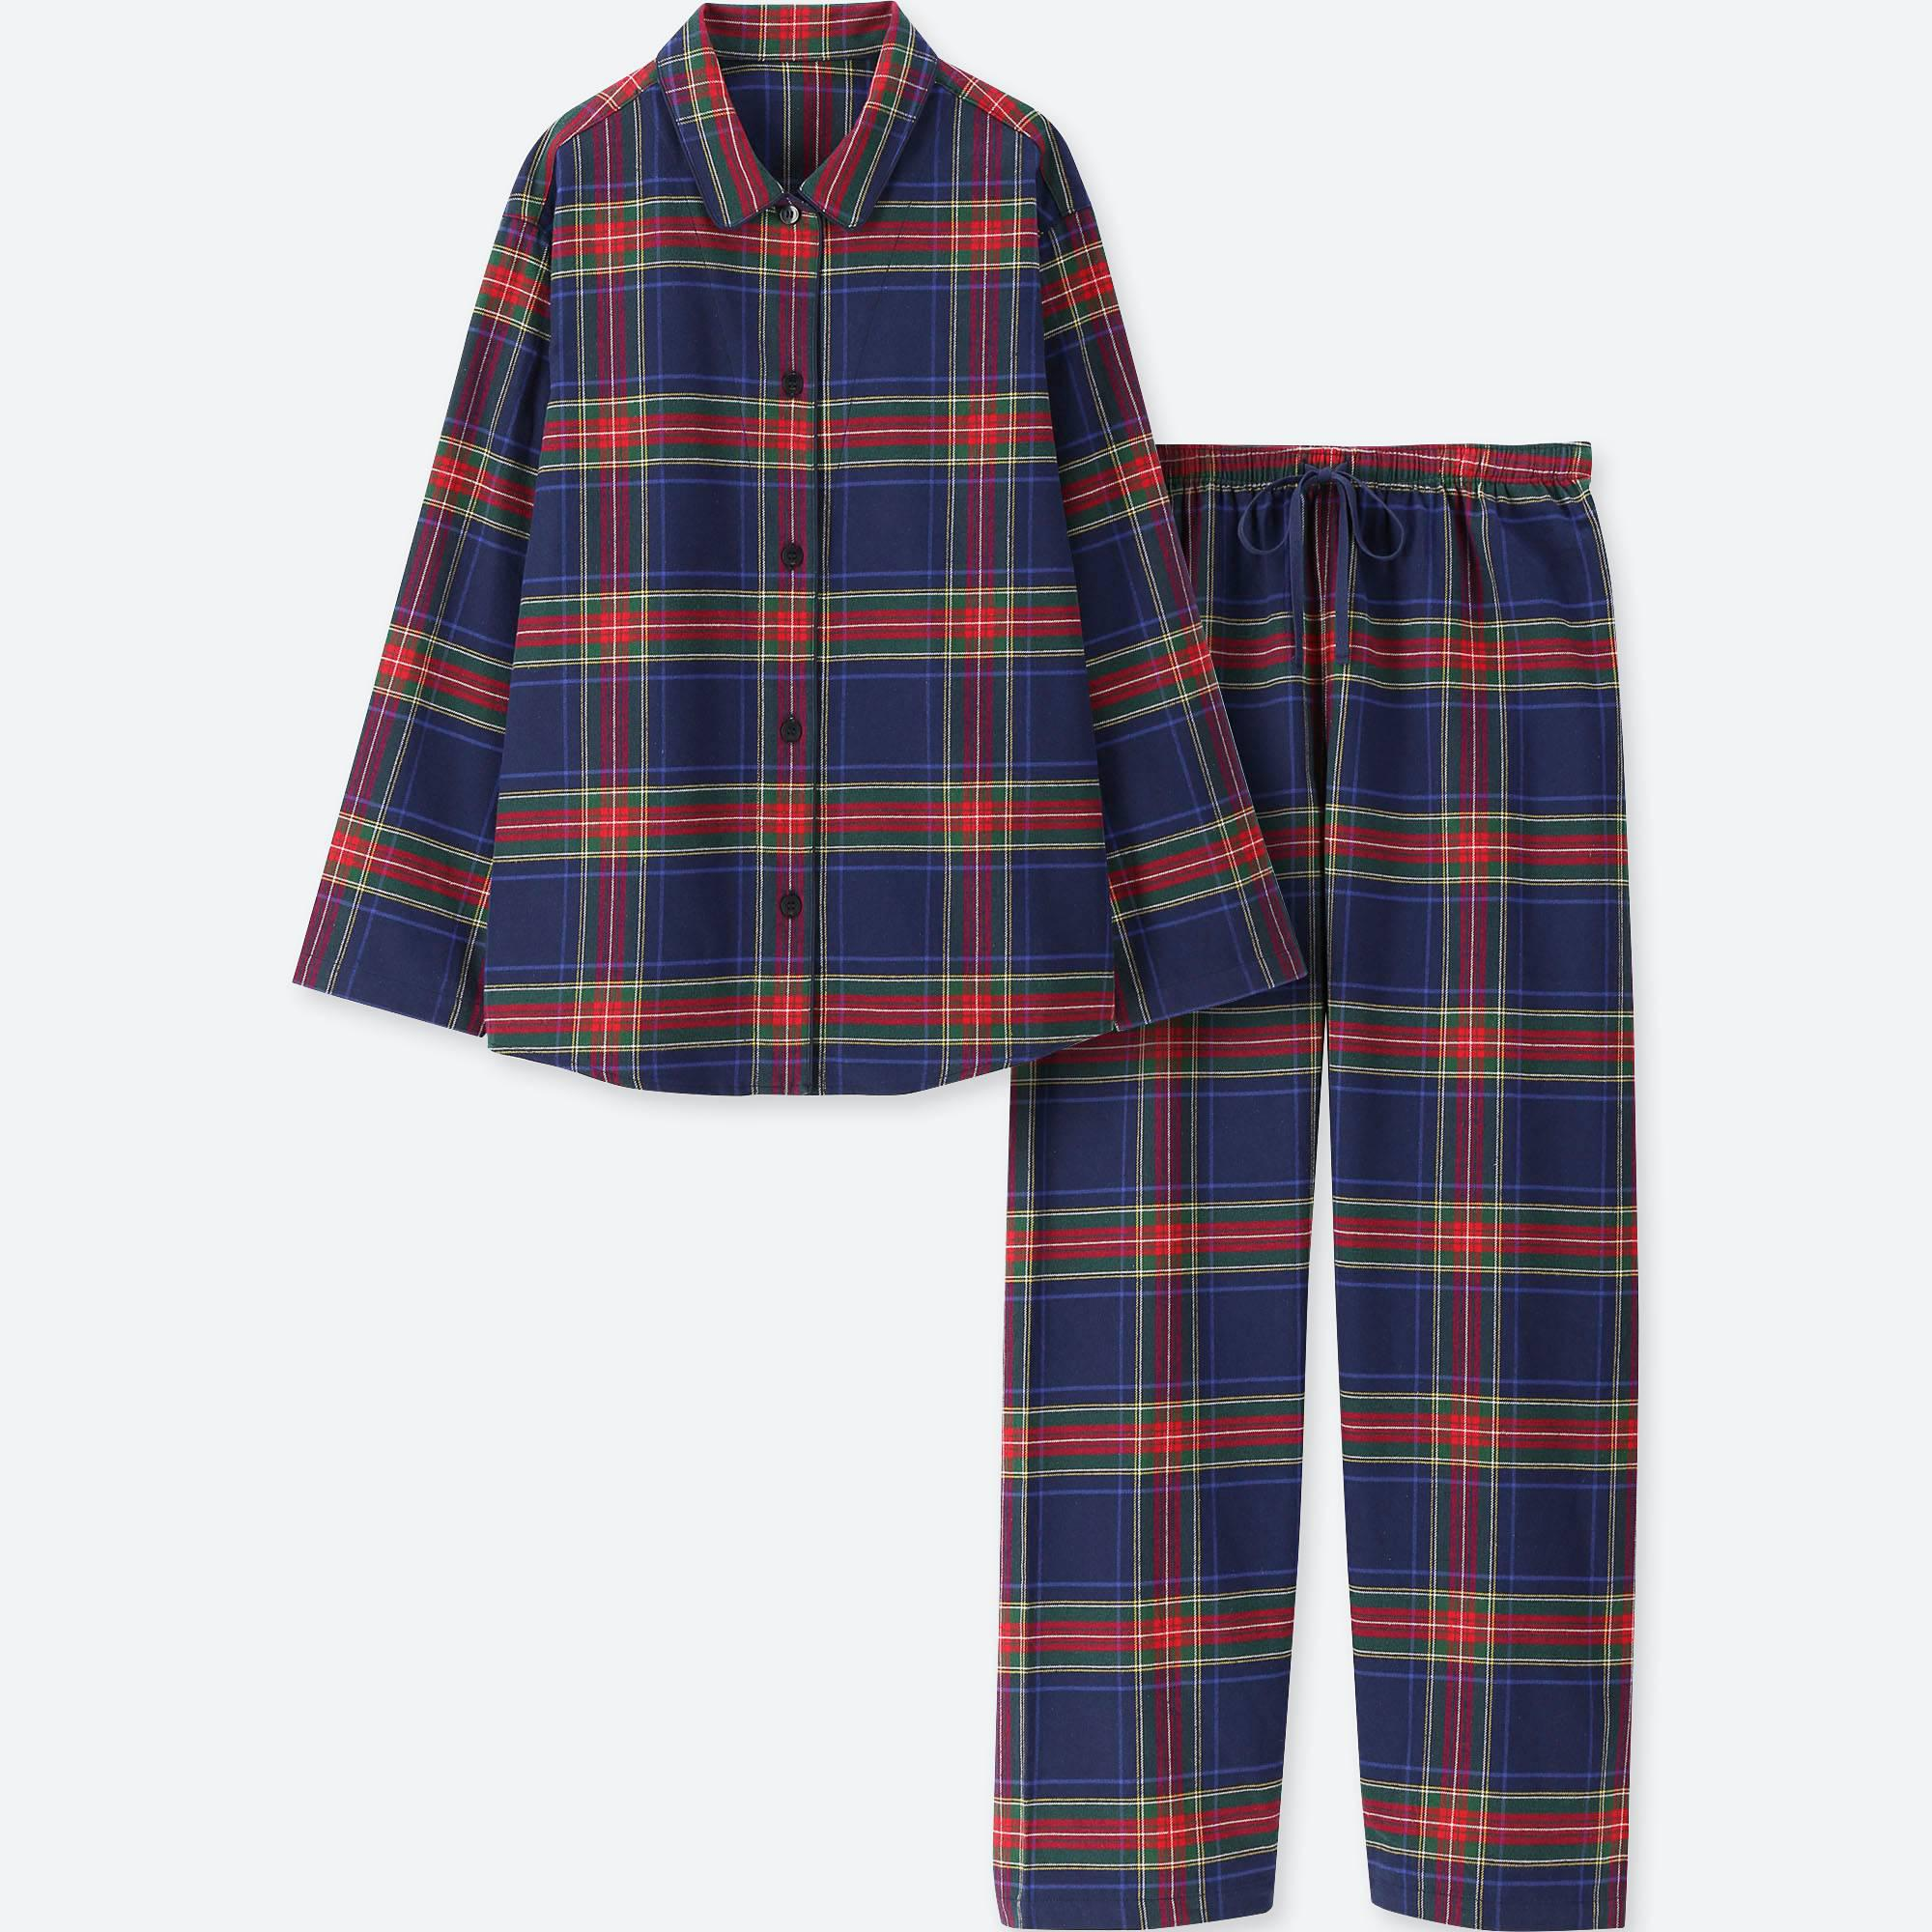 Lyst - Uniqlo Women Flannel Long-sleeve Pajamas in Blue 7072ac2eb